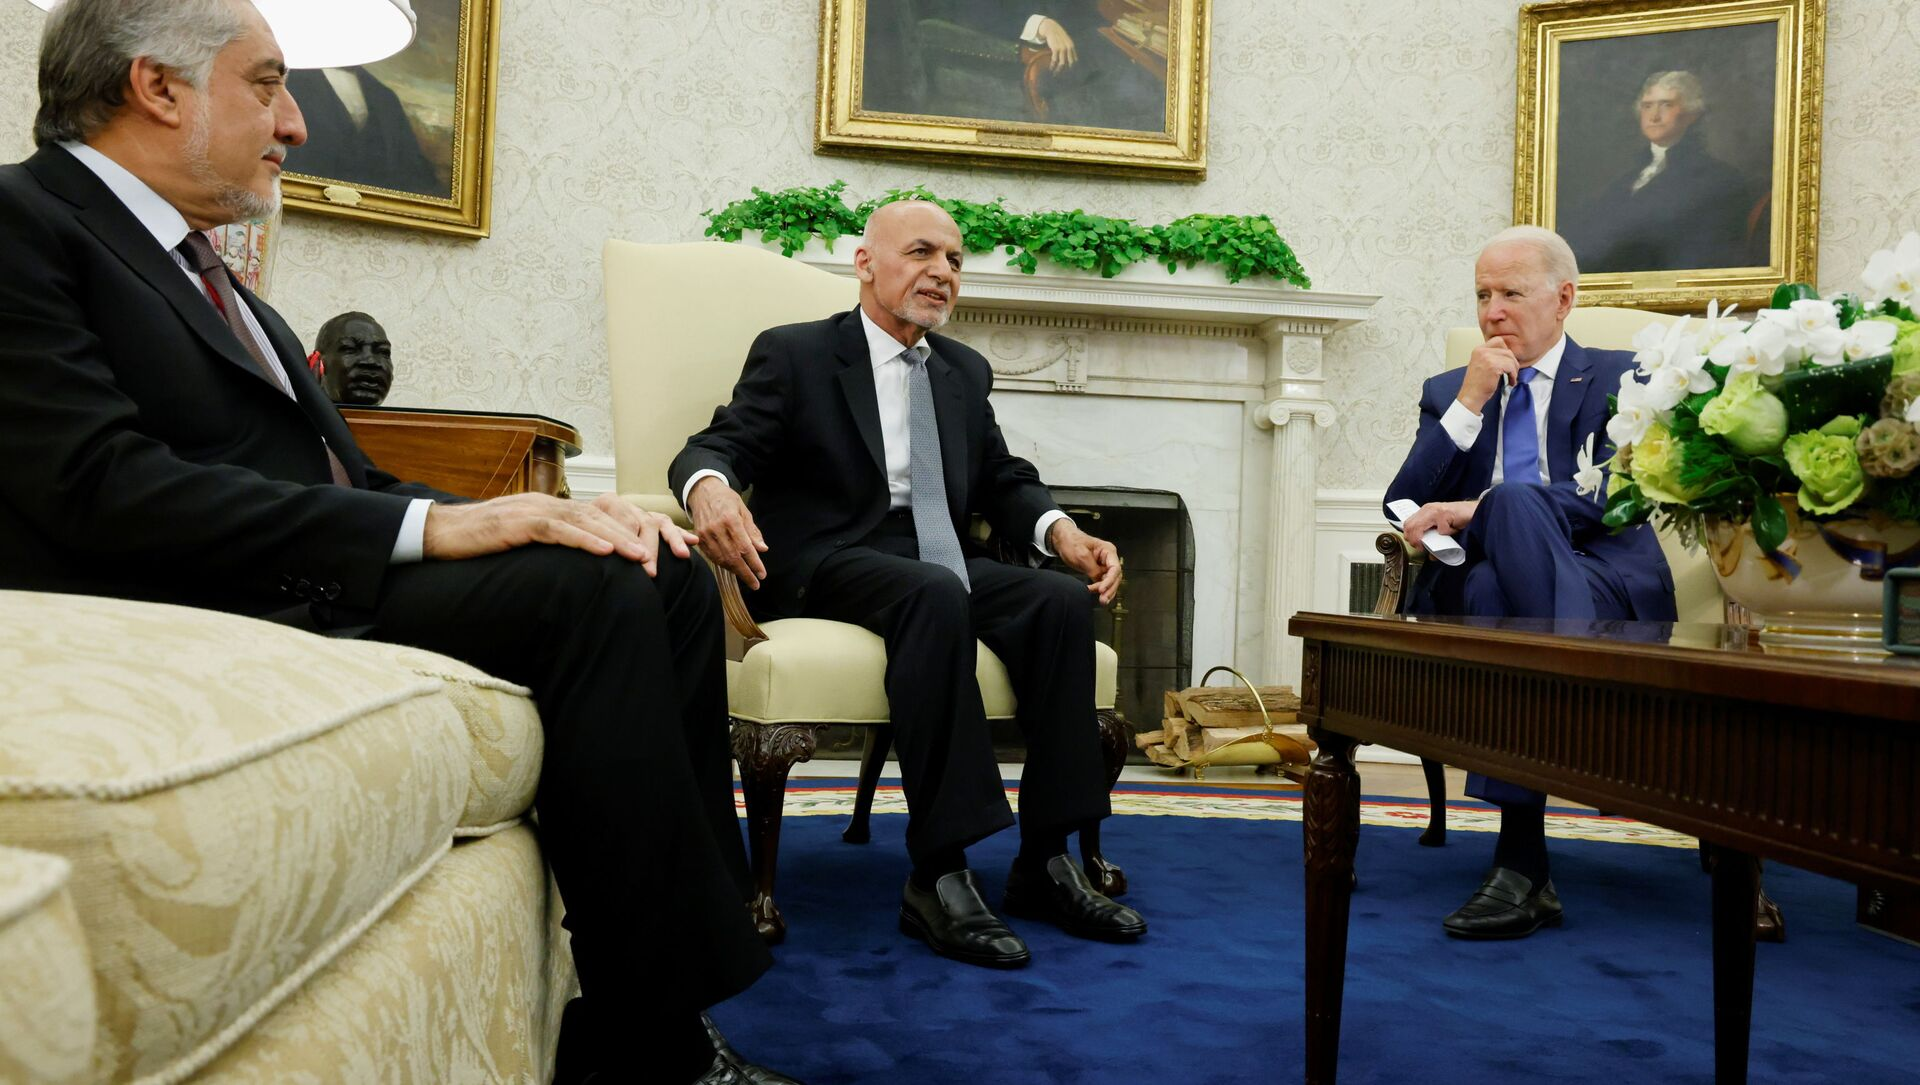 U.S. President Joe Biden meets with Afghan President Ashraf Ghani and Chairman of Afghanistan's High Council for National Reconciliation Abdullah Abdullah at the White House, in Washington, U.S., June 25, 2021. - Sputnik International, 1920, 01.09.2021